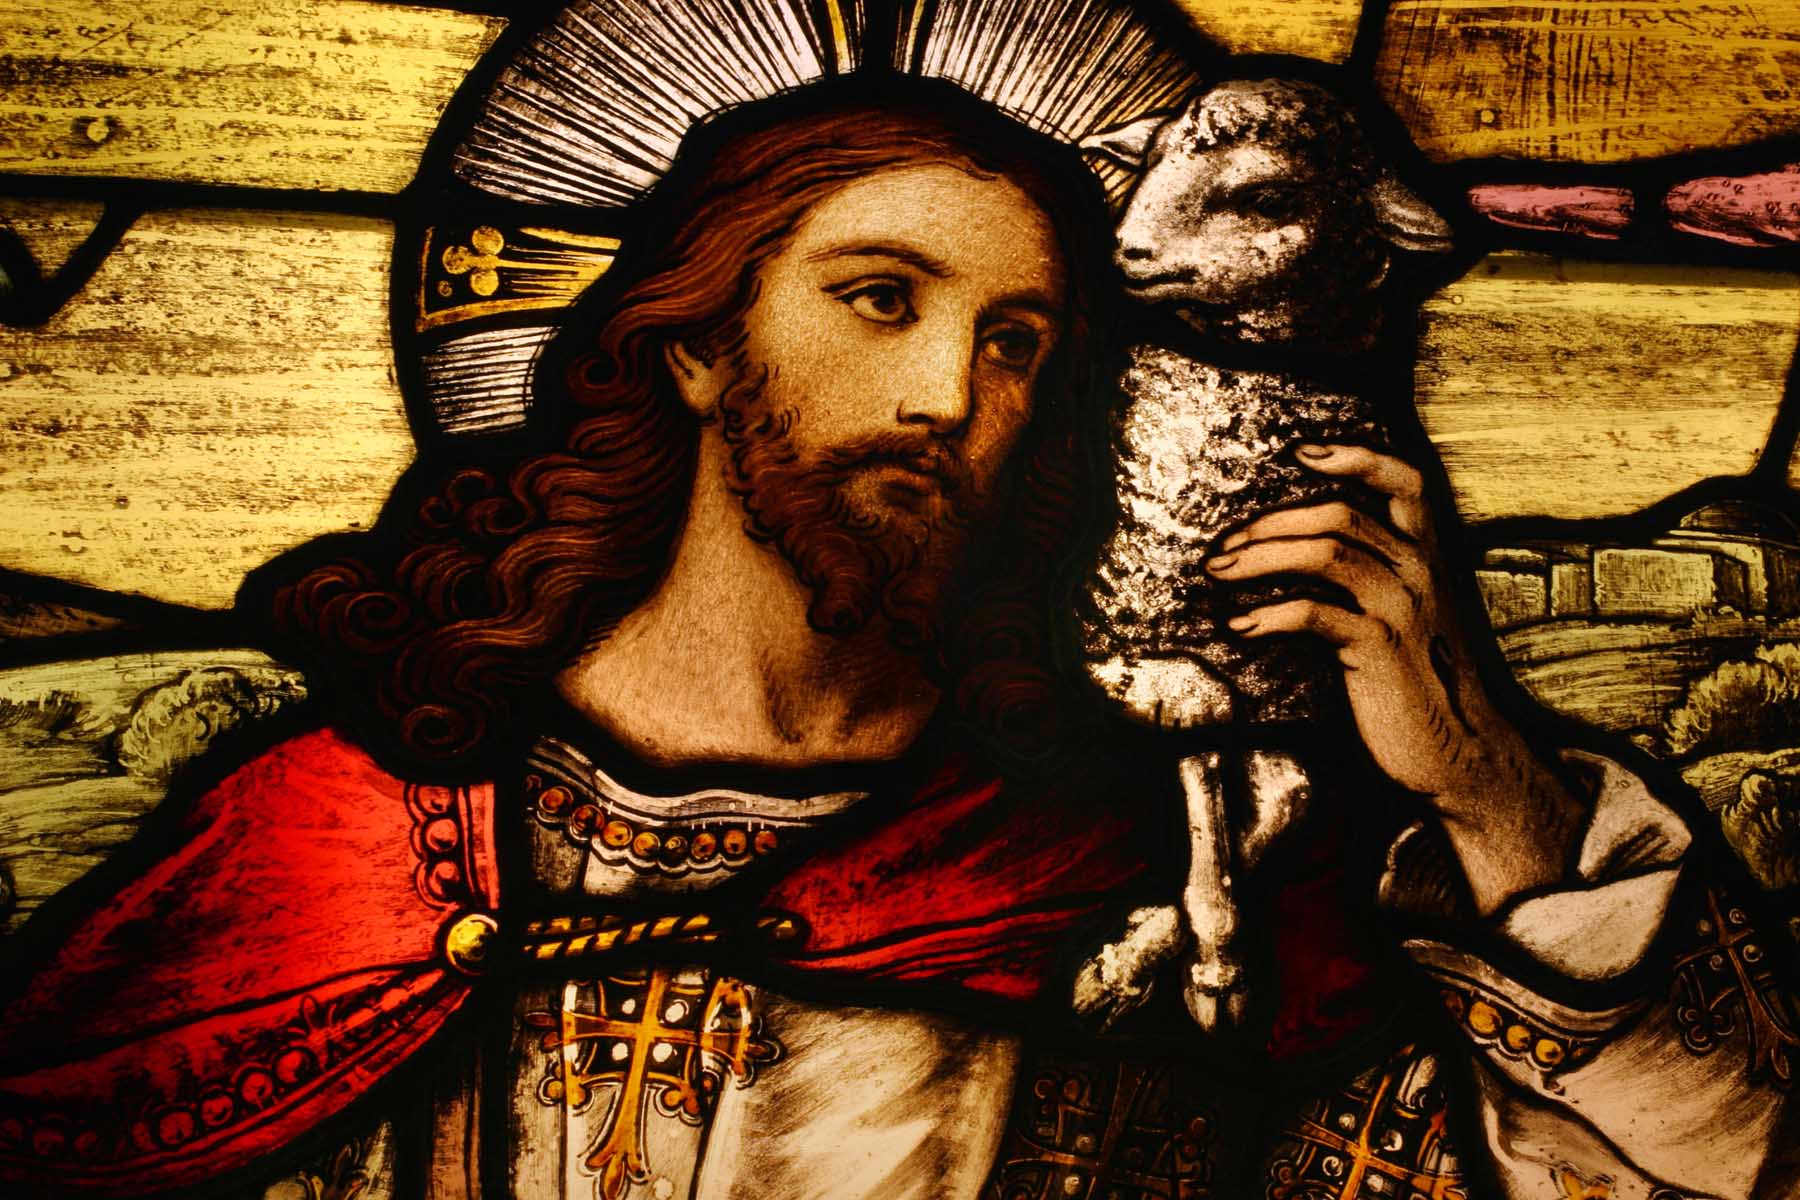 Jesus with Lamb - Stained glass